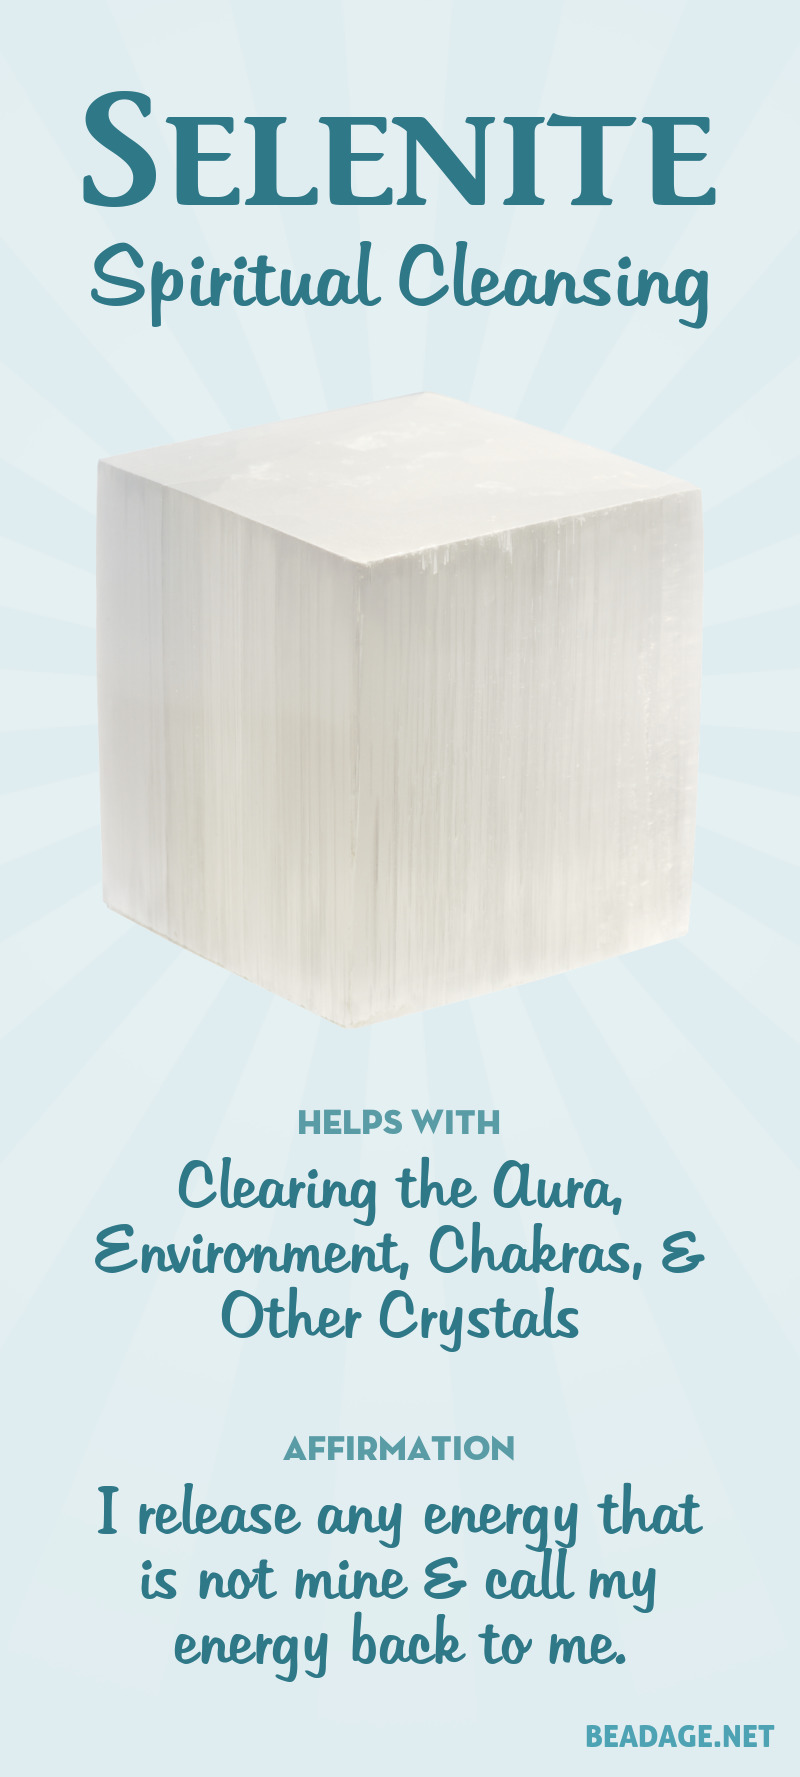 Selenite is best known for being a clearing & purification crystal. It can be used to clear the aura from negativity or stuck energy, and to clear crystals by placing them on top of a flat piece of selenite. Learn more about Selenite meaning + healing properties, benefits & more. Visit to find gemstone meanings & info about crystal healing, stone powers, and chakra stones. Get some positive energy & vibes! #gemstones #crystals #crystalhealing #beadage